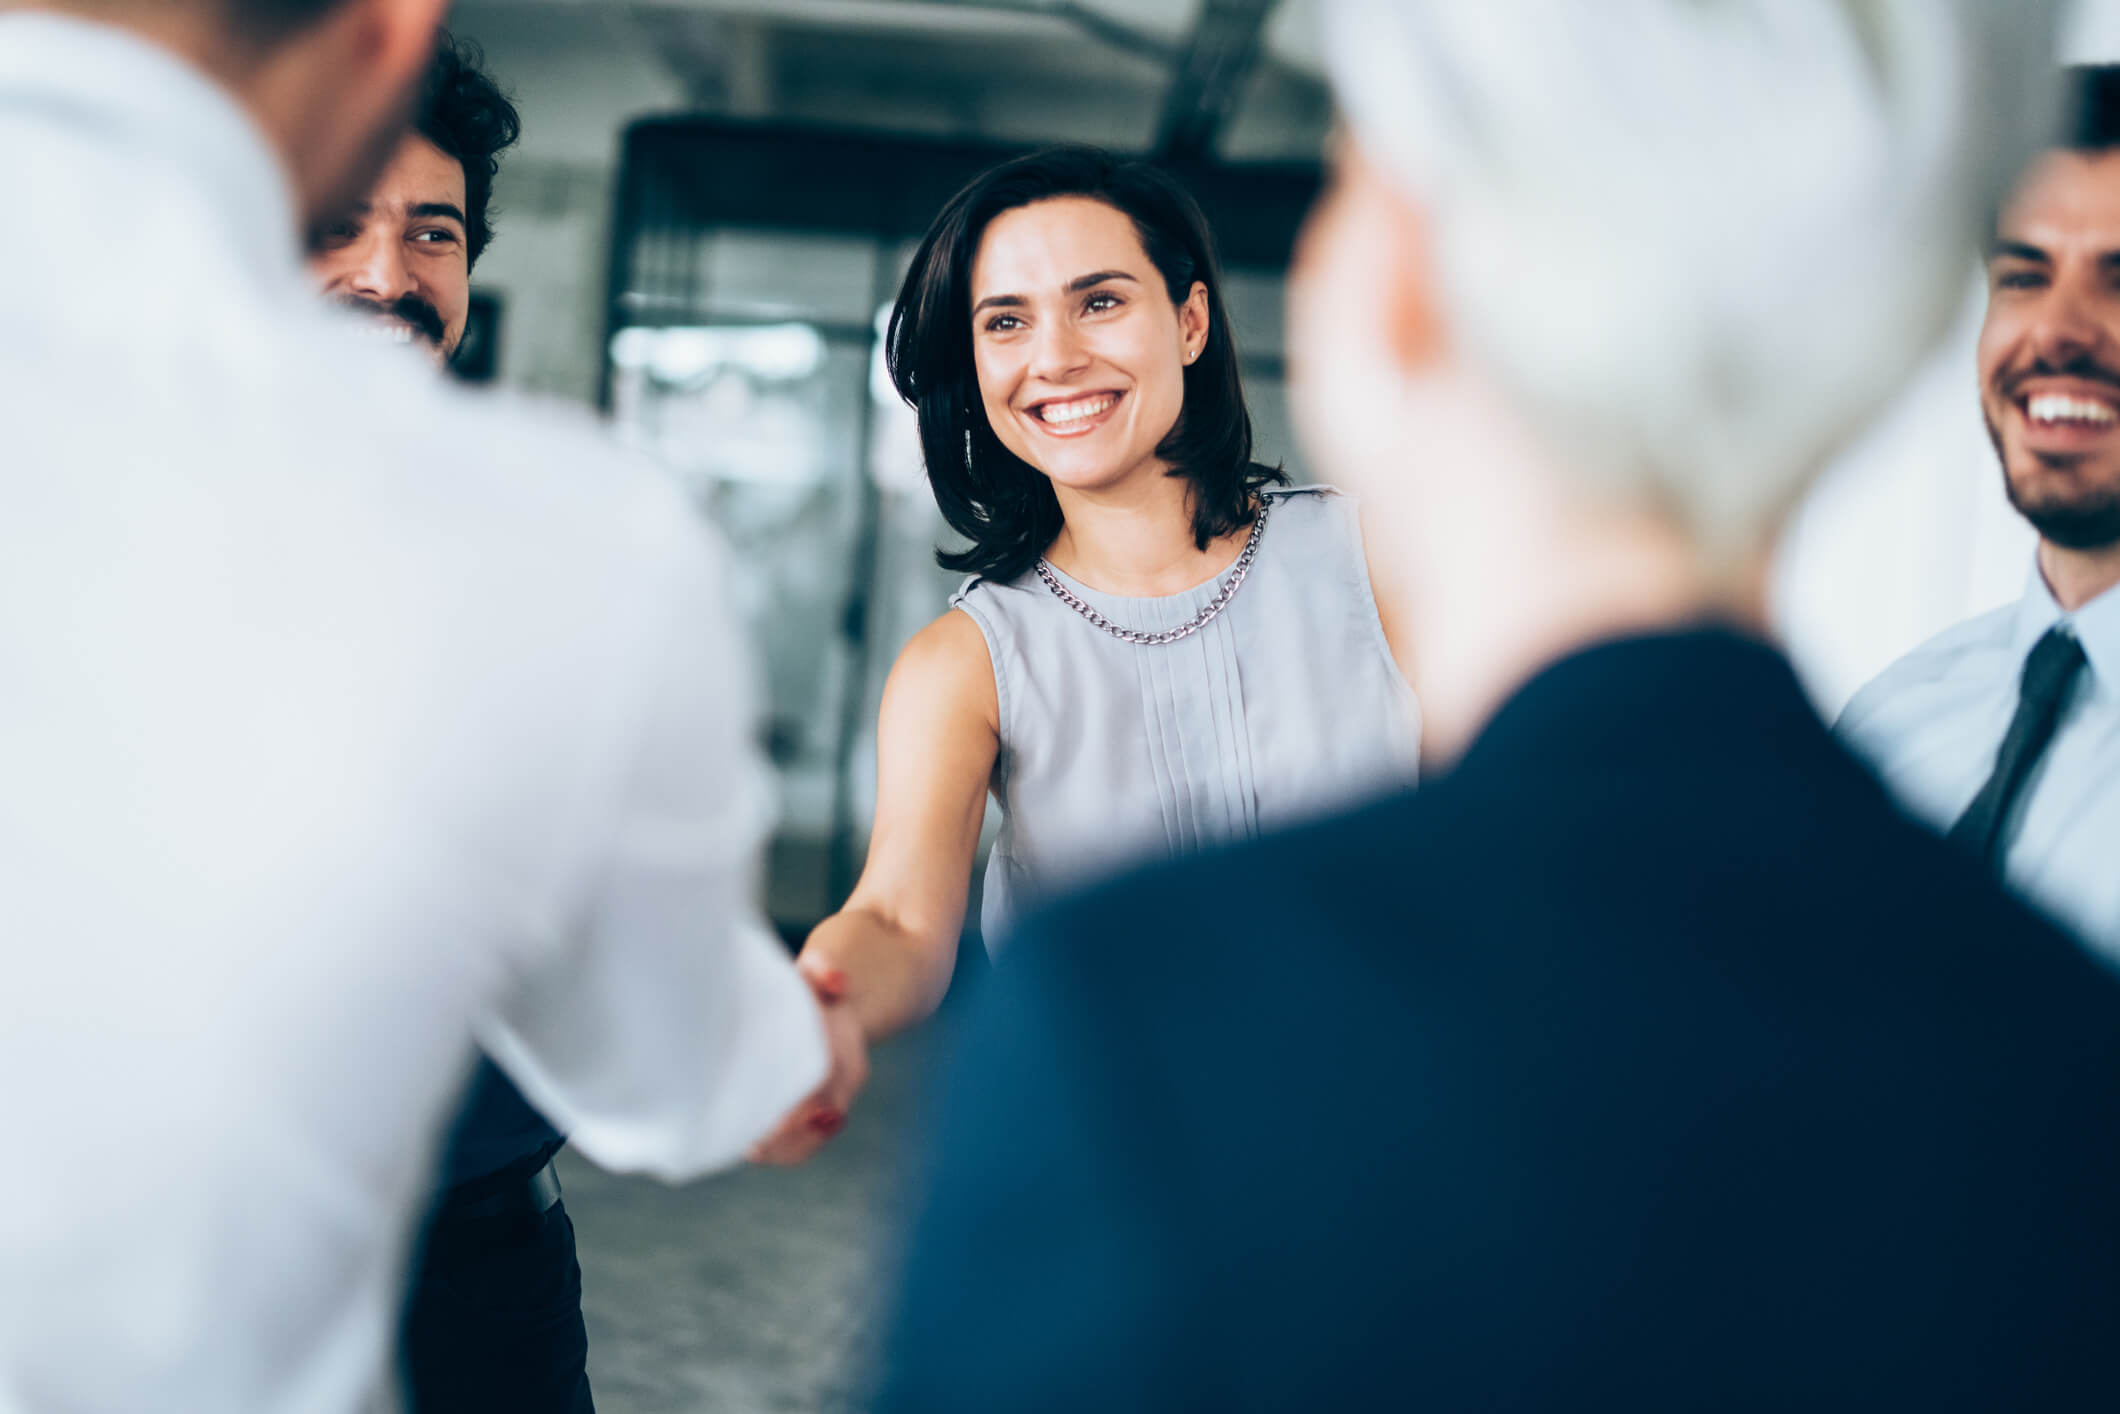 Female business person shaking hands with business associate